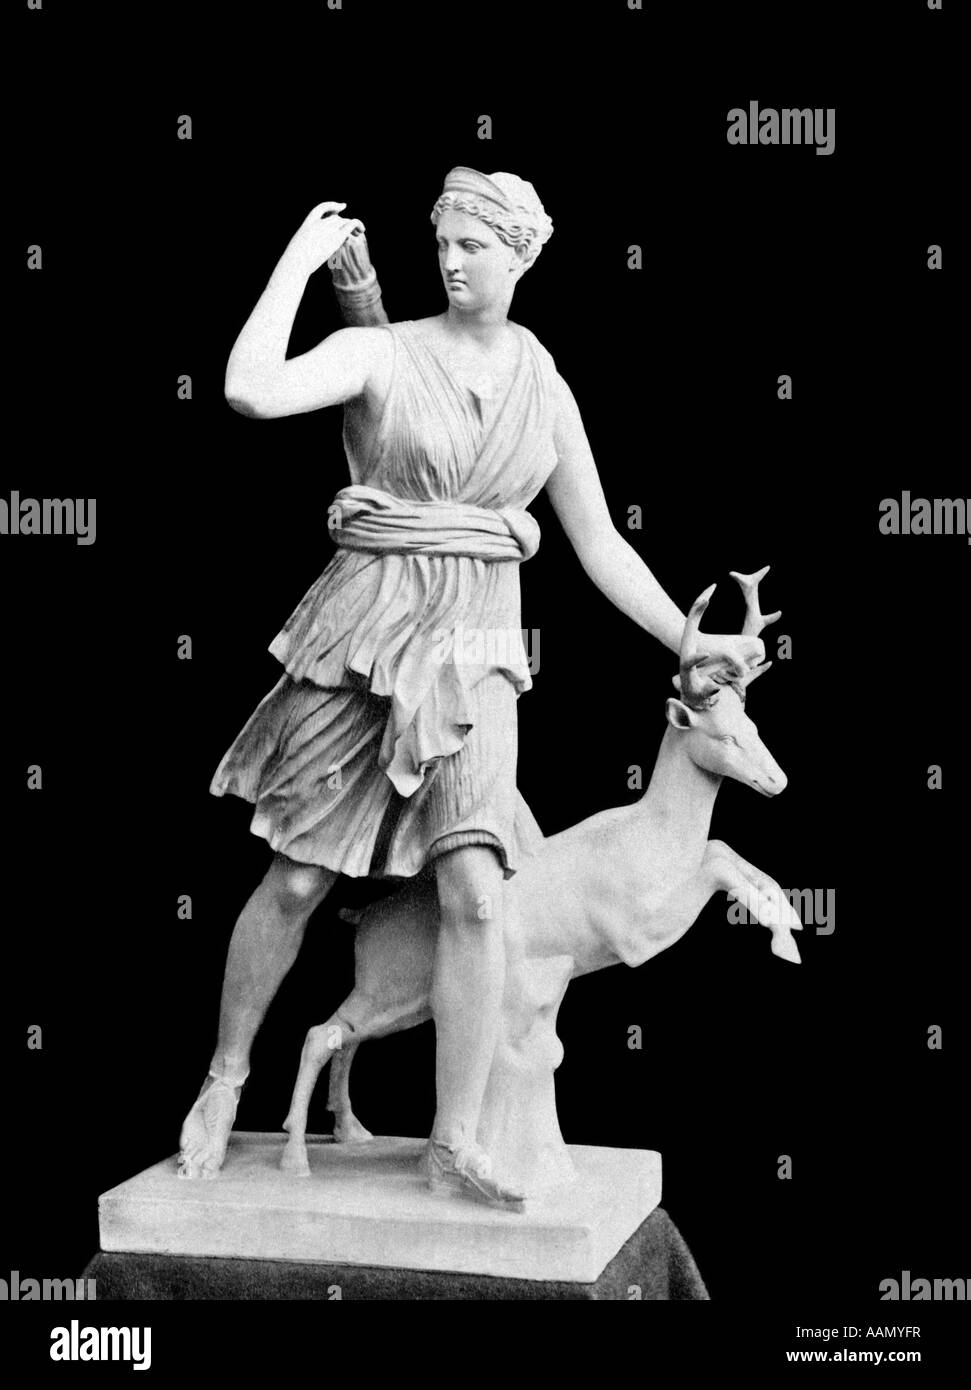 MARBLE STATUE OF DIANA ROMAN GODDESS OF MOON FORESTS ANIMALS ALSO KNOWN AS GREEK GODDESS ARTEMIS - Stock Image